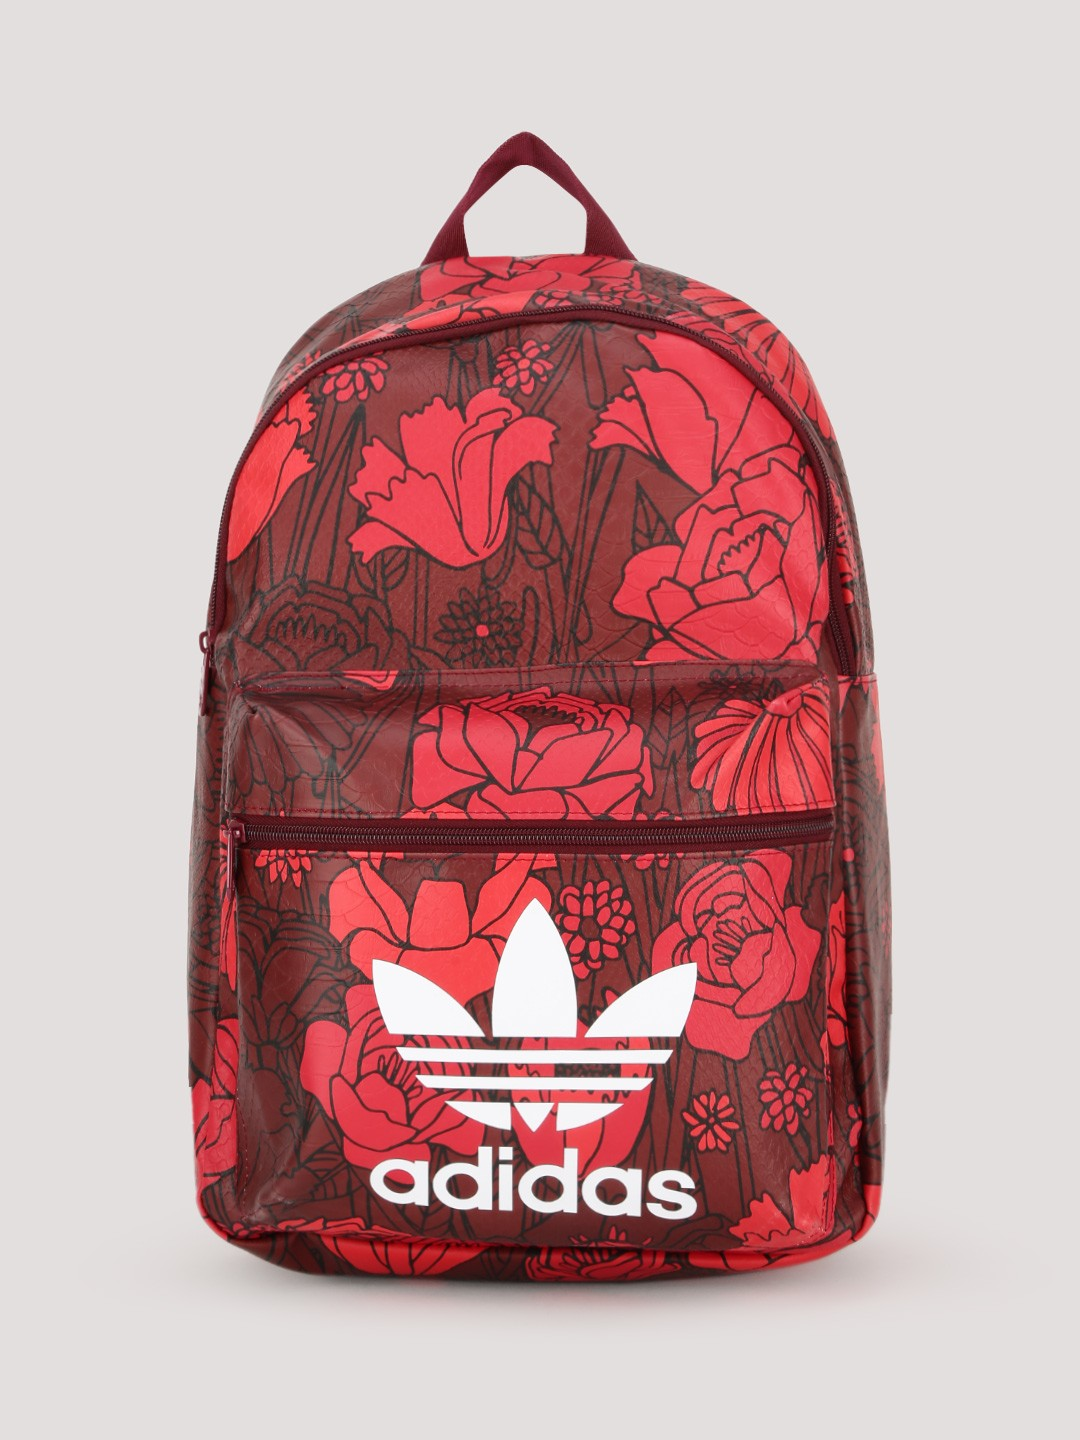 buy adidas originals classic backpack for women women 39 s. Black Bedroom Furniture Sets. Home Design Ideas